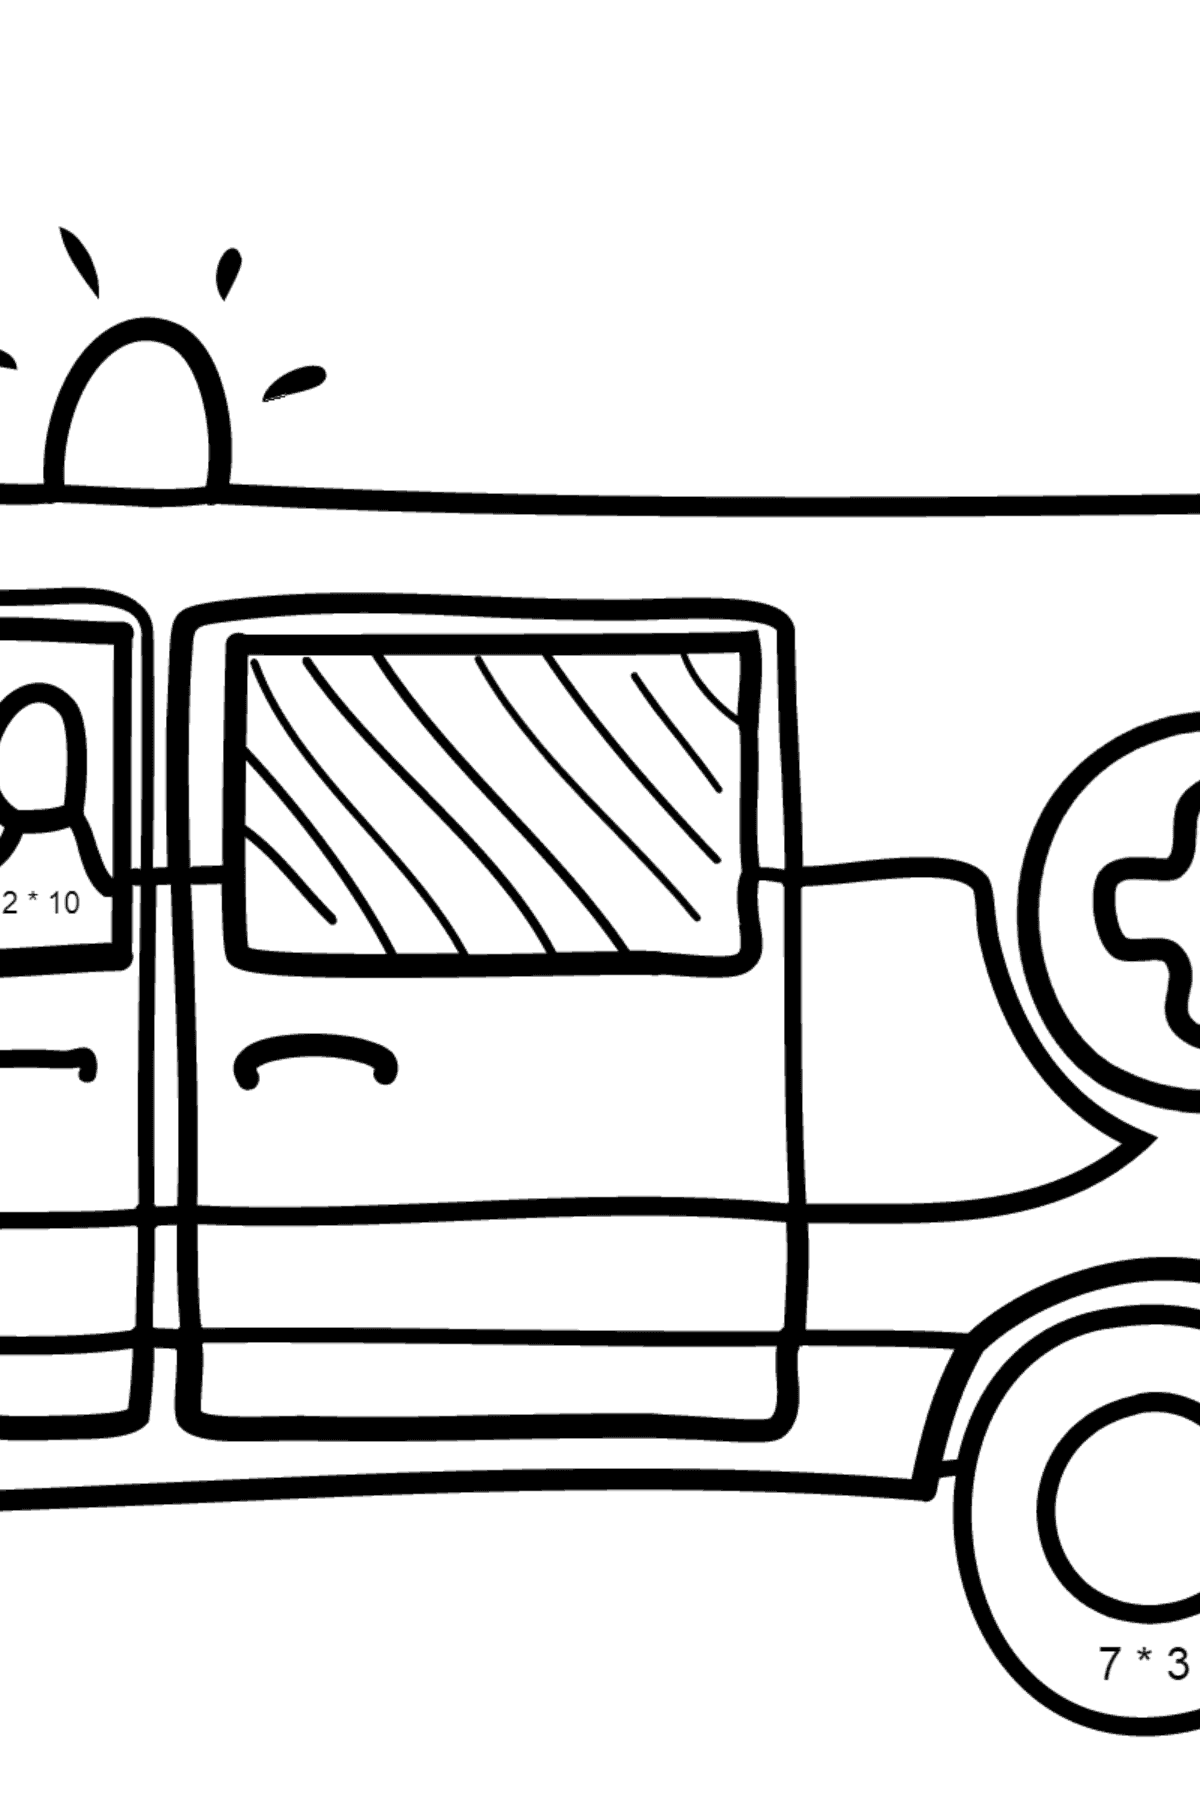 Coloring Page - An Ambulance for Kids  - Color by Number Multiplication